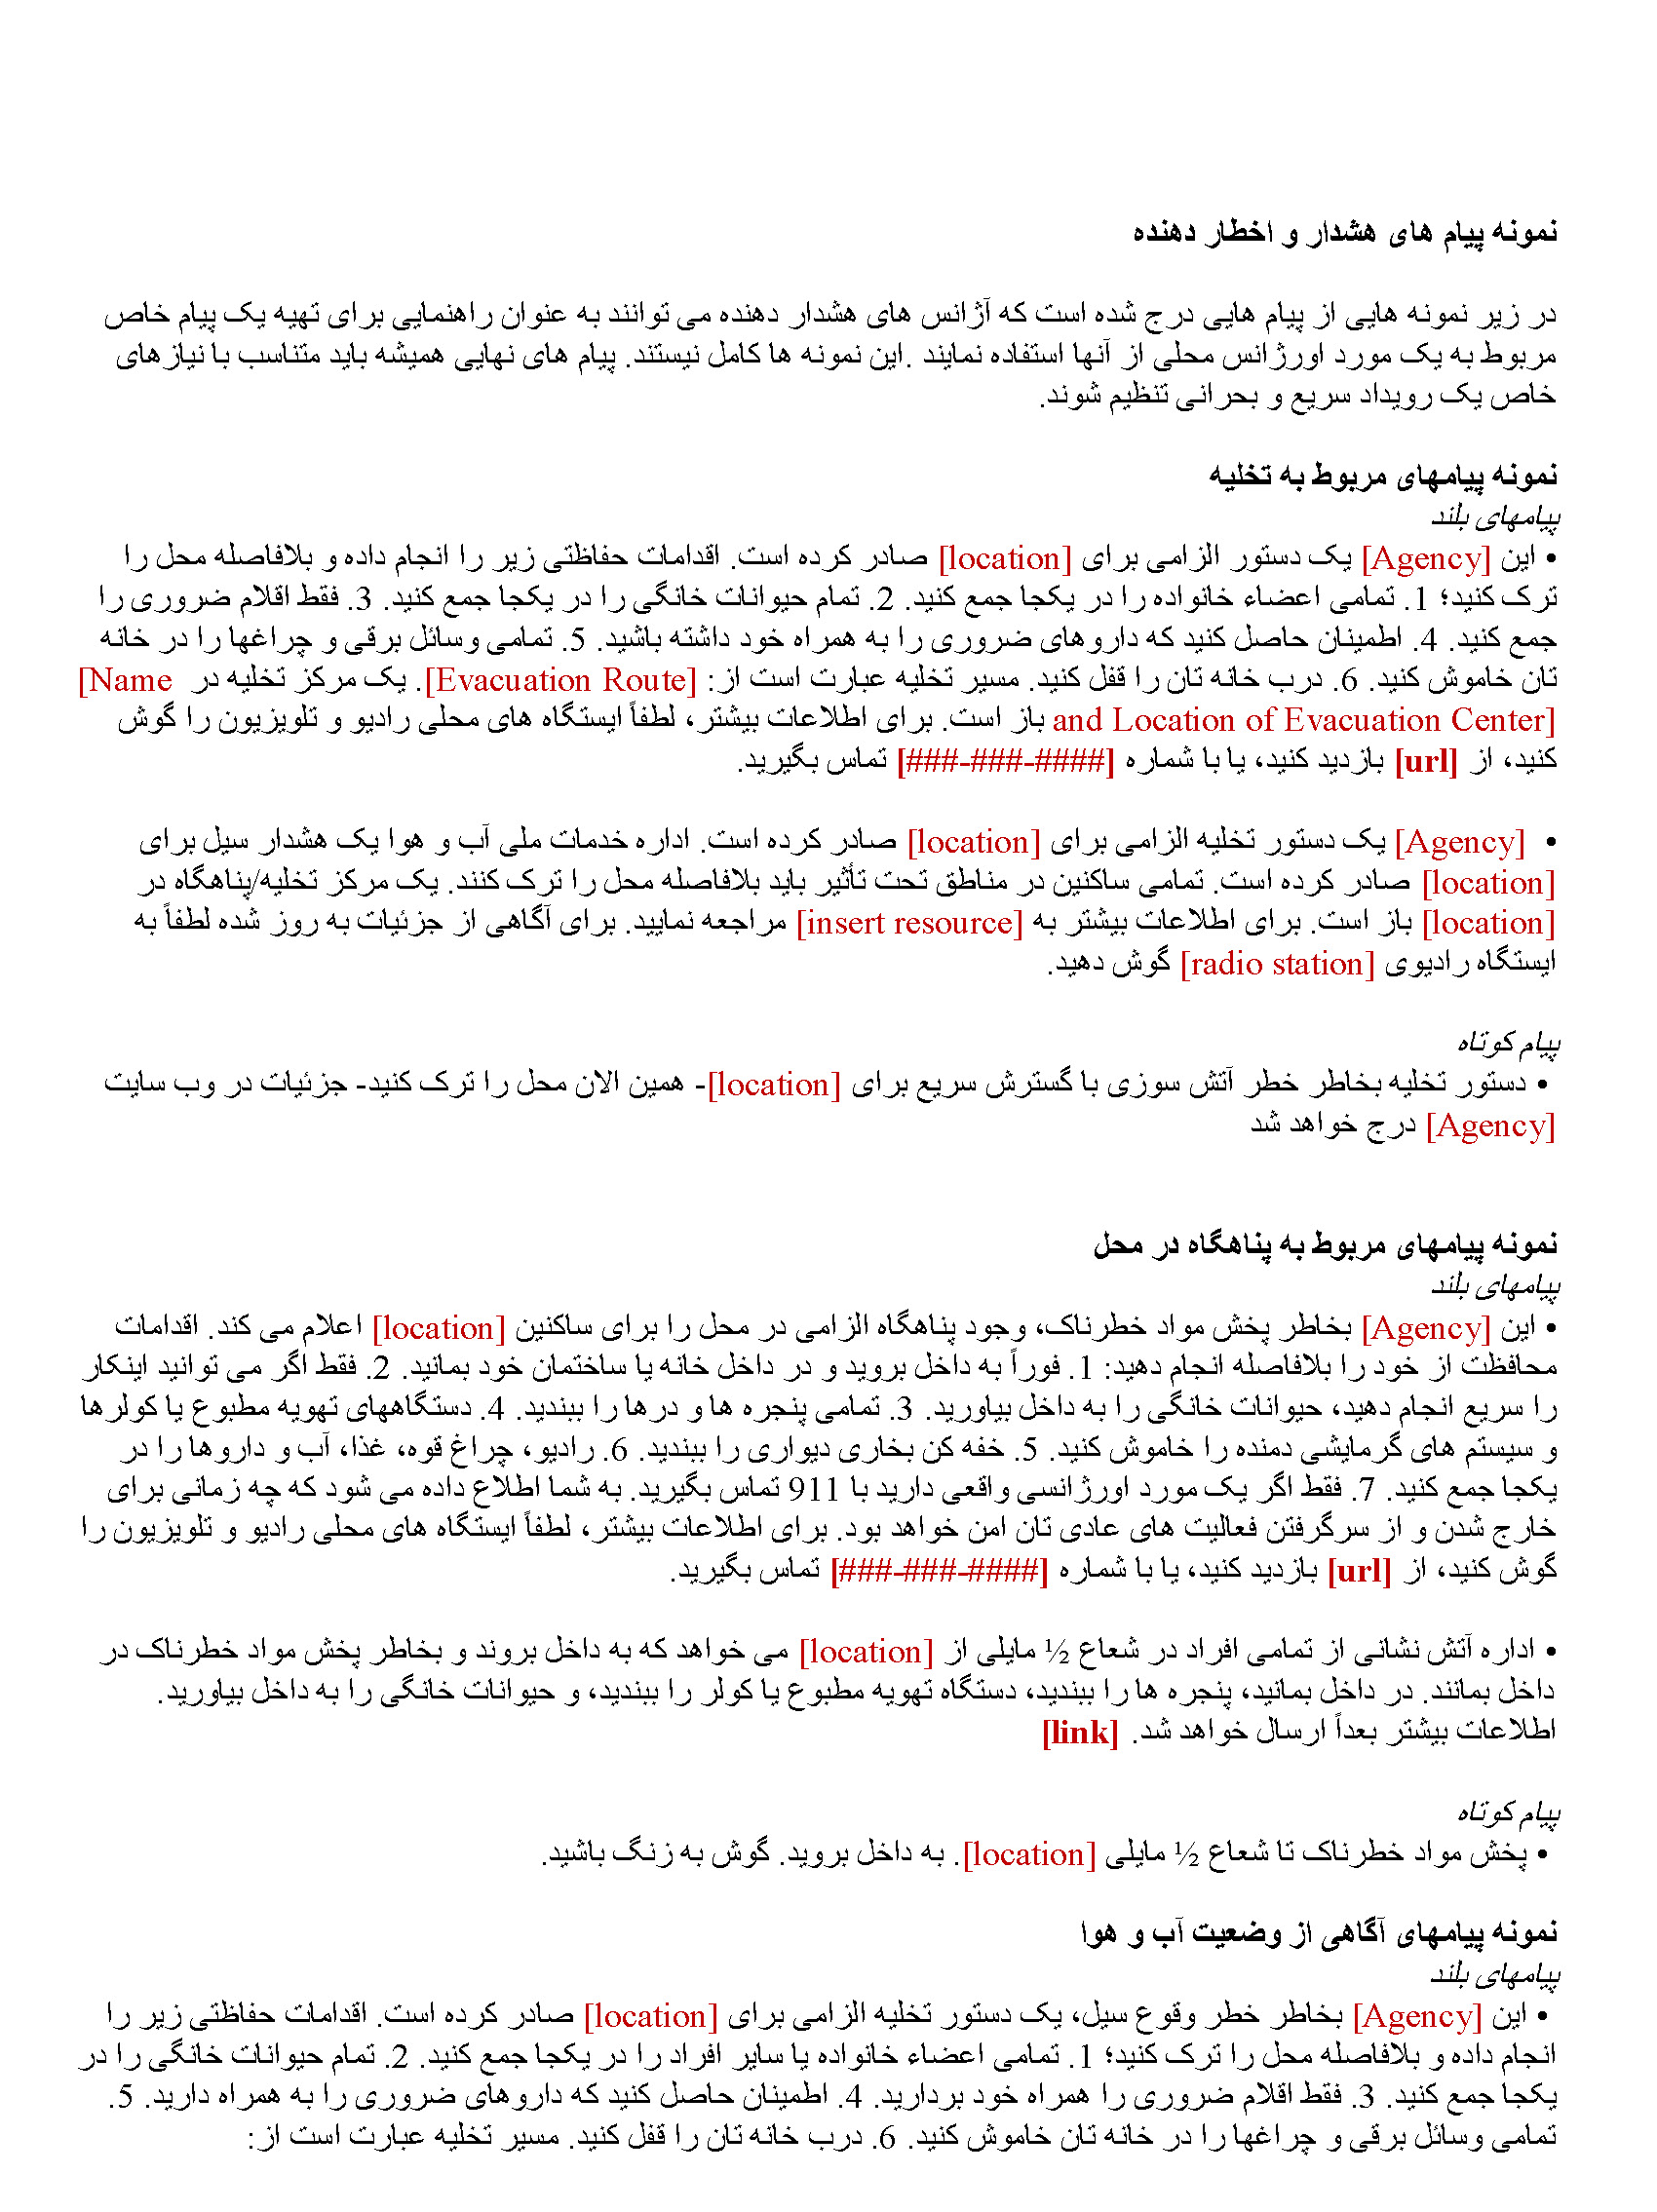 Image of the Sample AW Messages Farsi document